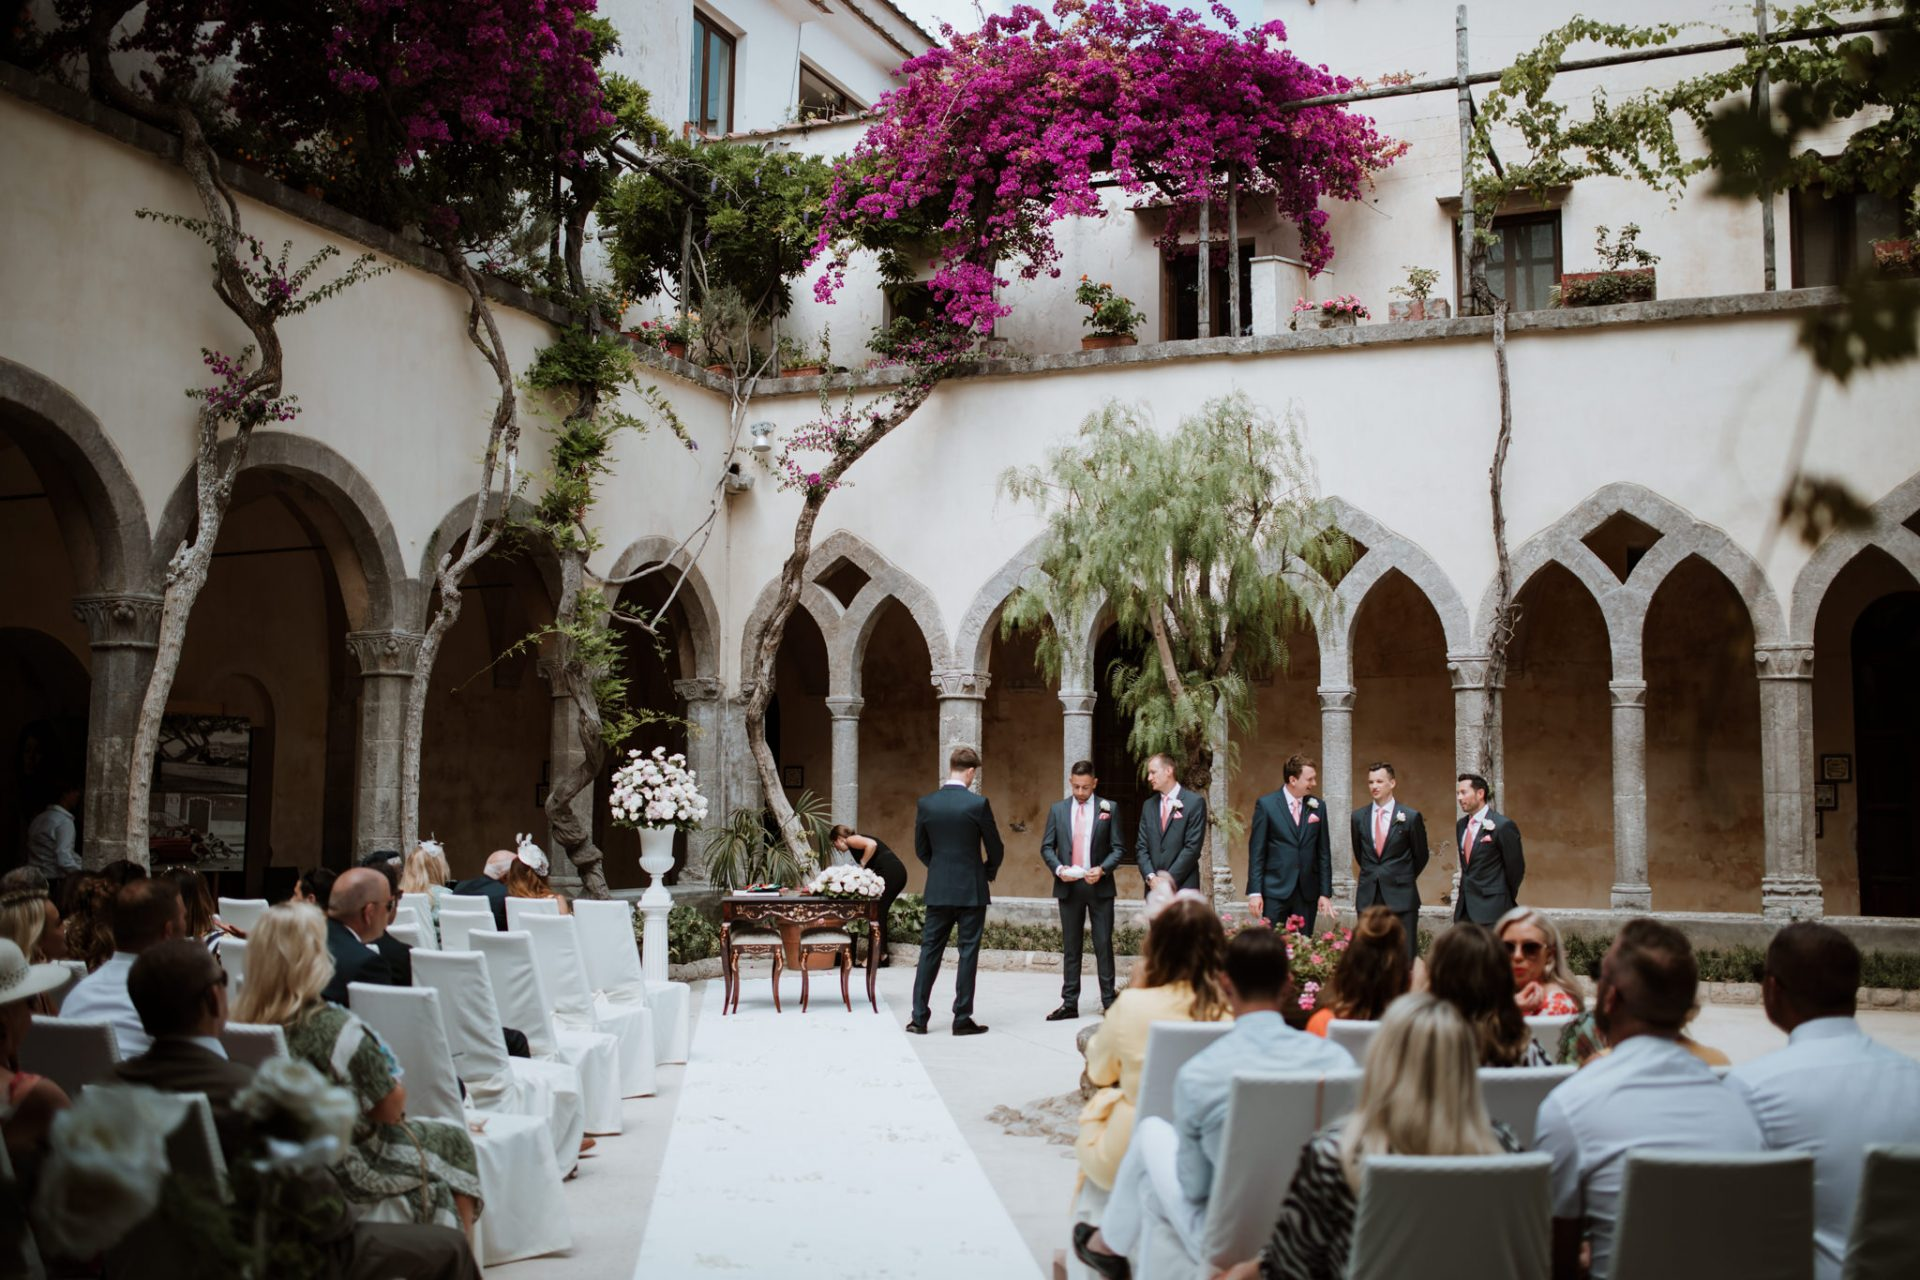 groom and groomsmen waiting in sorrento cloisters chiostro di san francesco